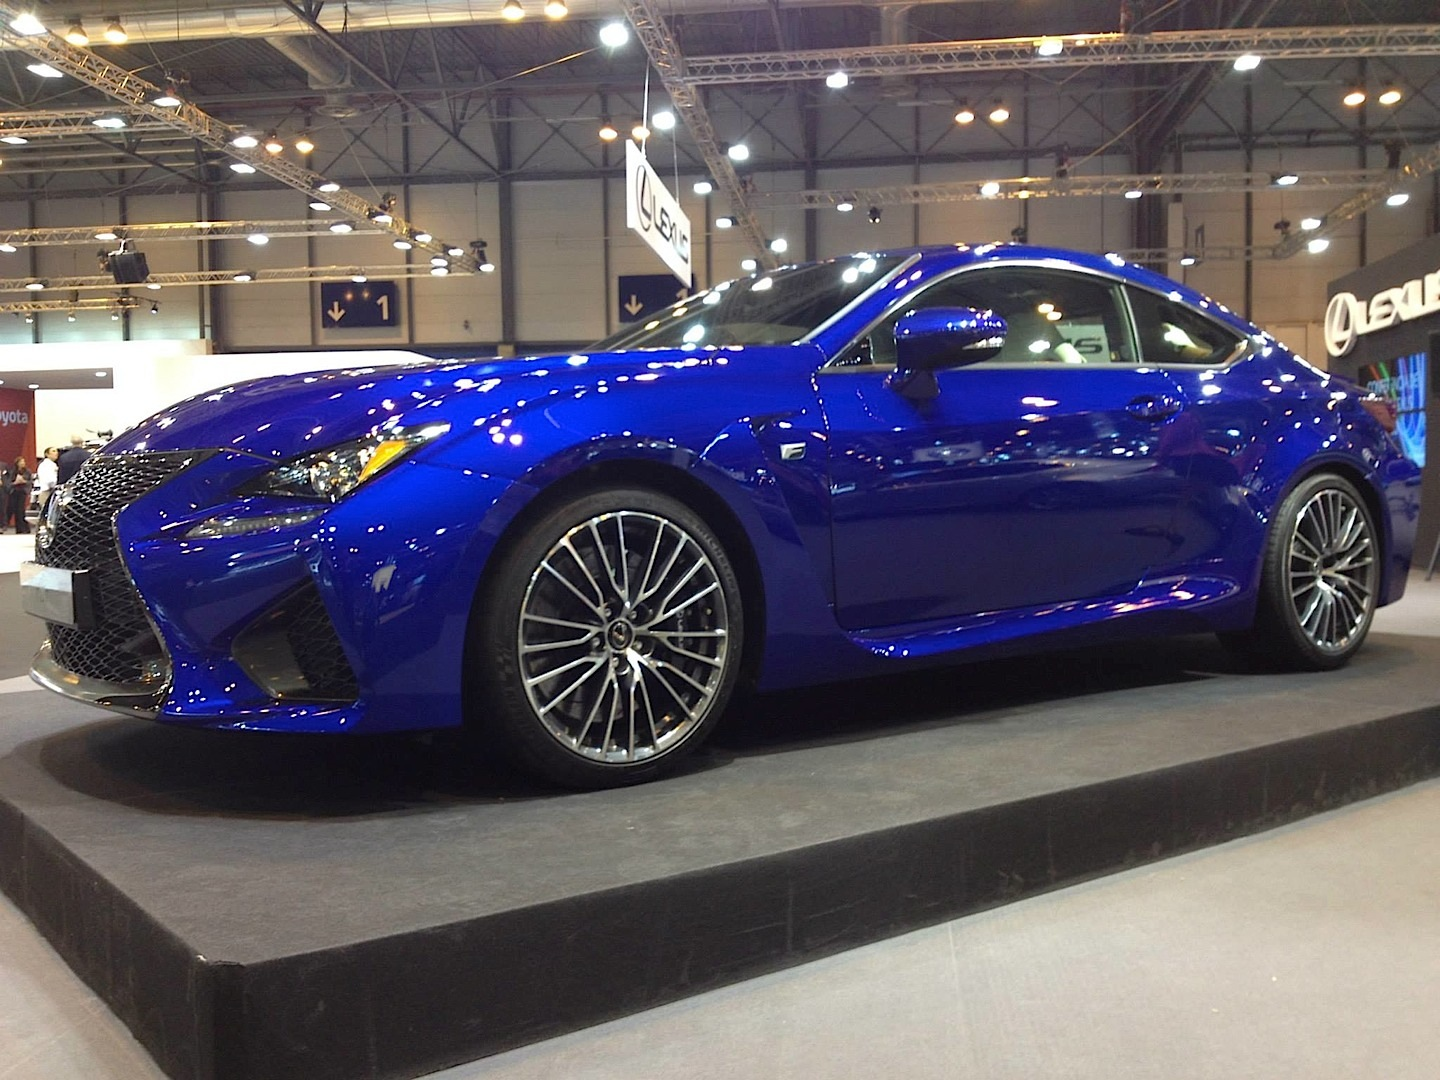 Rc Car Racing >> 25th Anniversary Edition Lexus IS F Sport and New RC F Rims Debut in Madrid - autoevolution